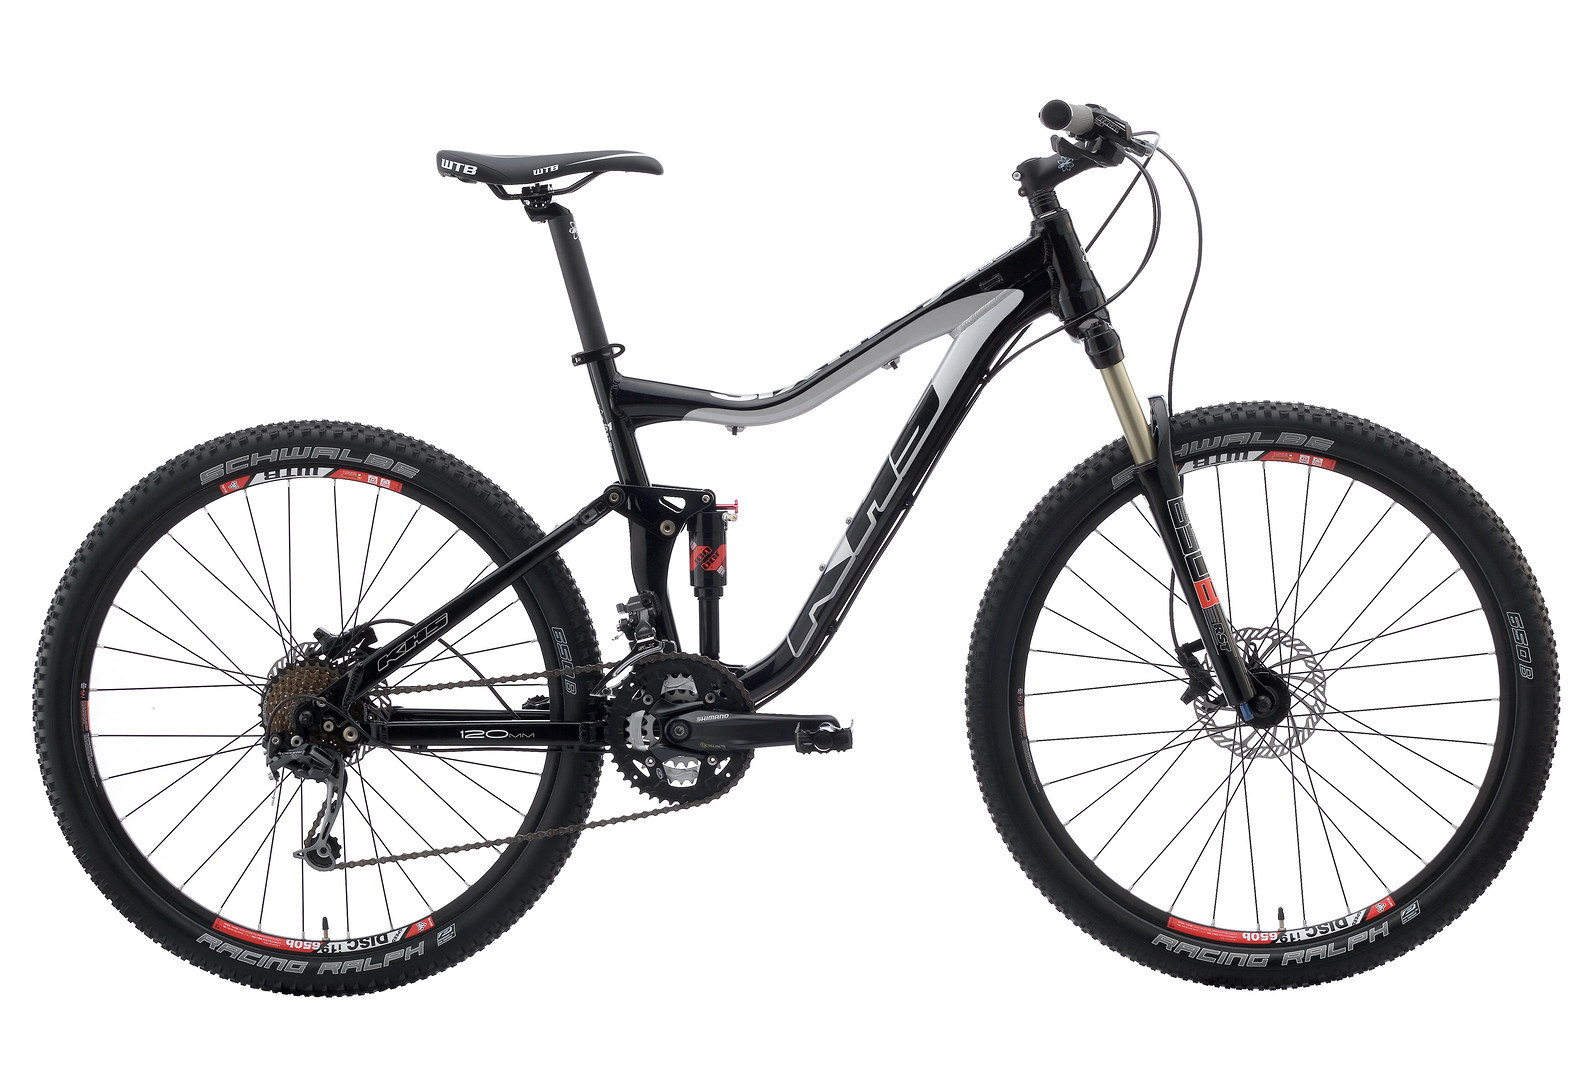 2013 KHS SixFifty 2500 Bike 2013 SixFifty 2500